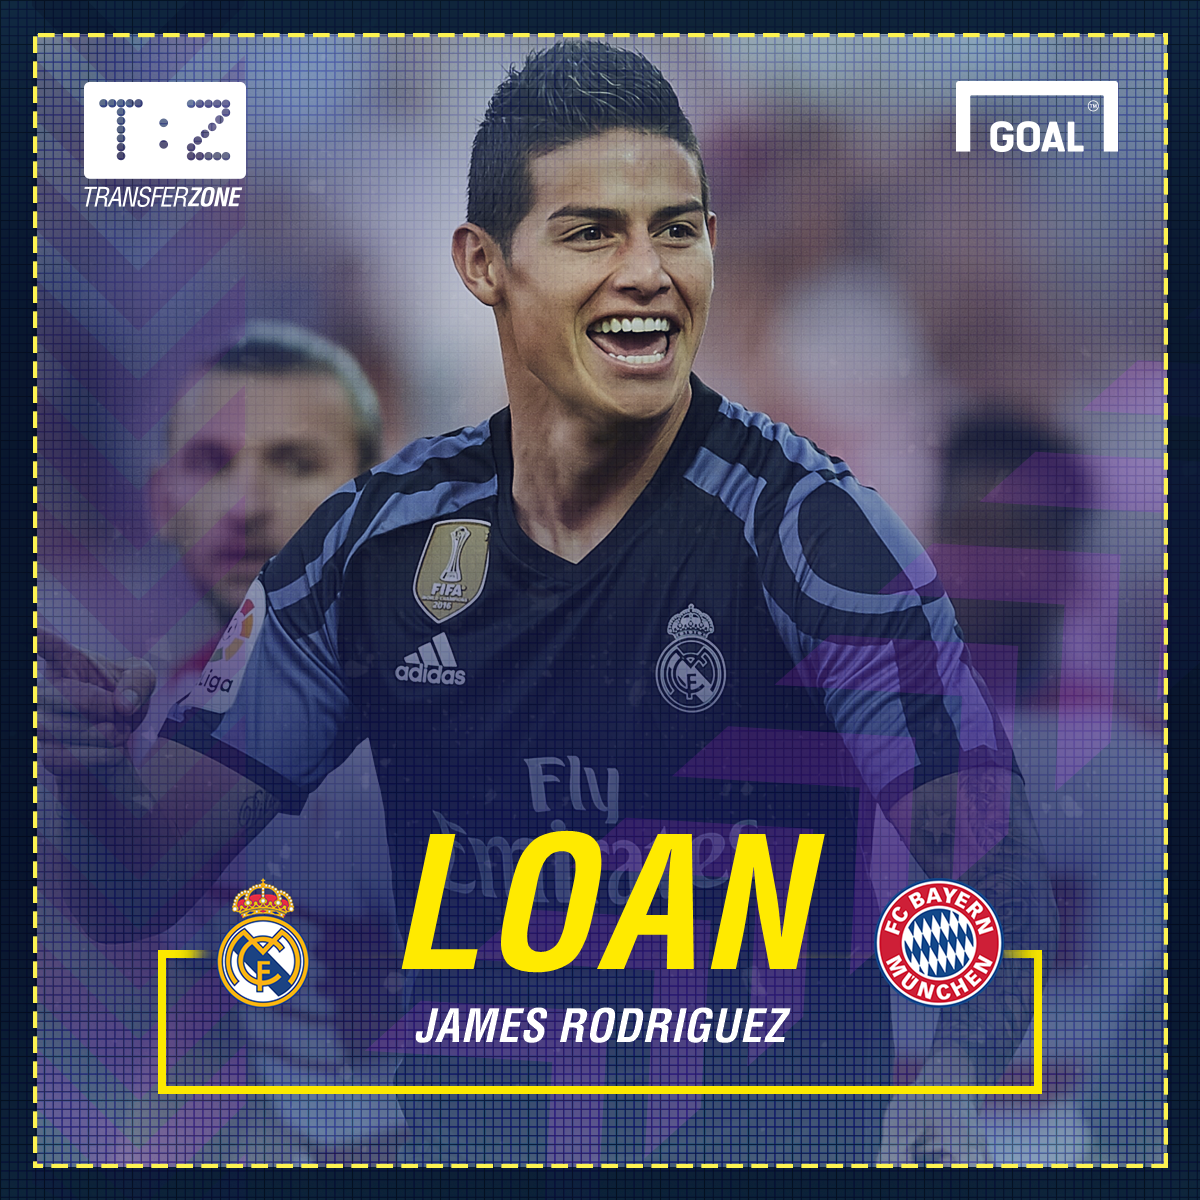 Bayern Munich signs James Rodriguez from Real Madrid